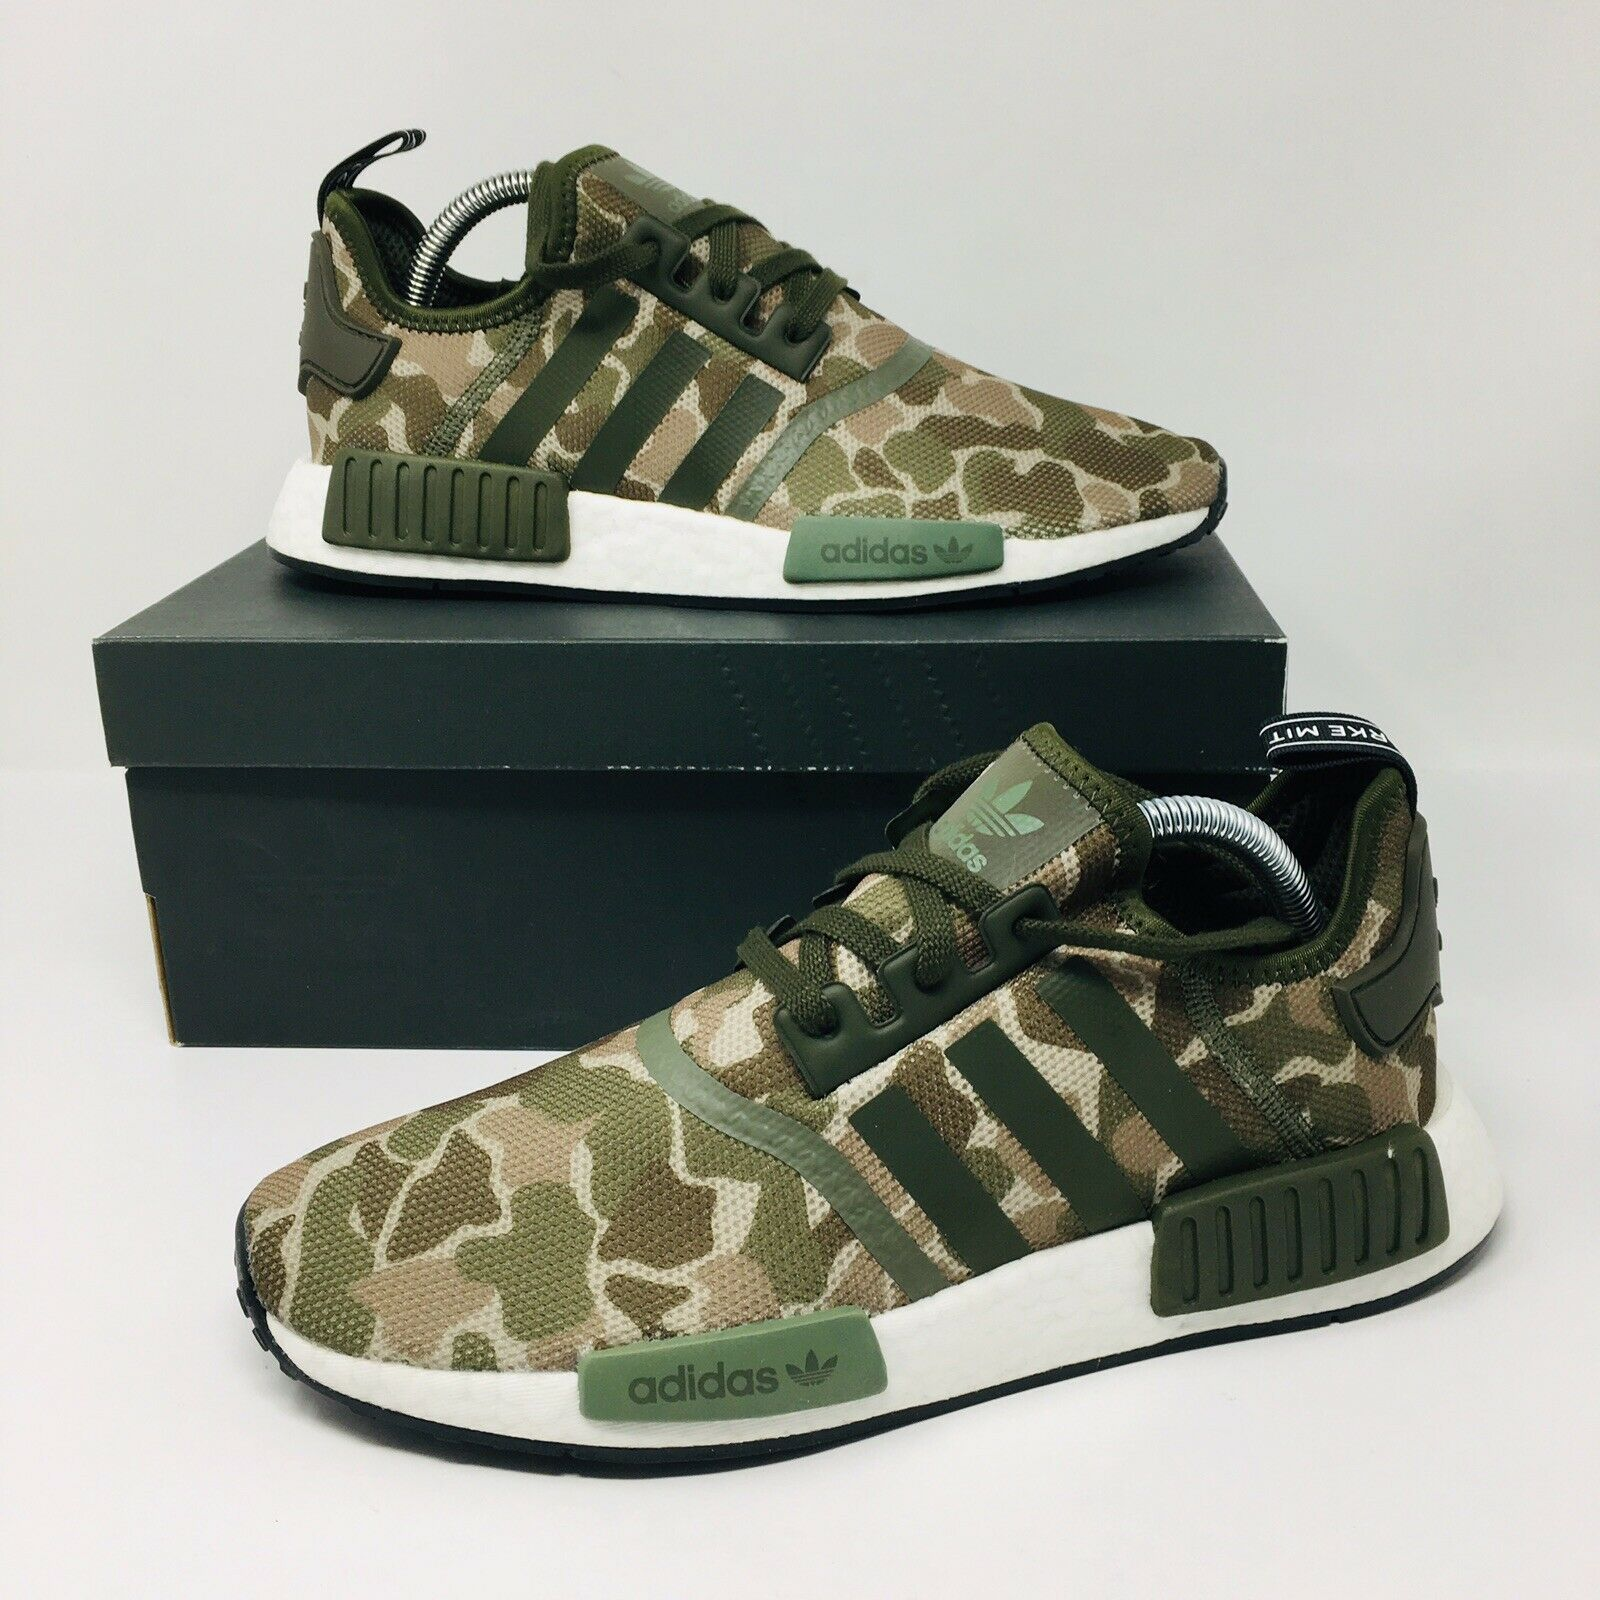 NEW Adidas Original NMD R1 Camoflage (Men Size 10.5) Running shoes Ultra Boost